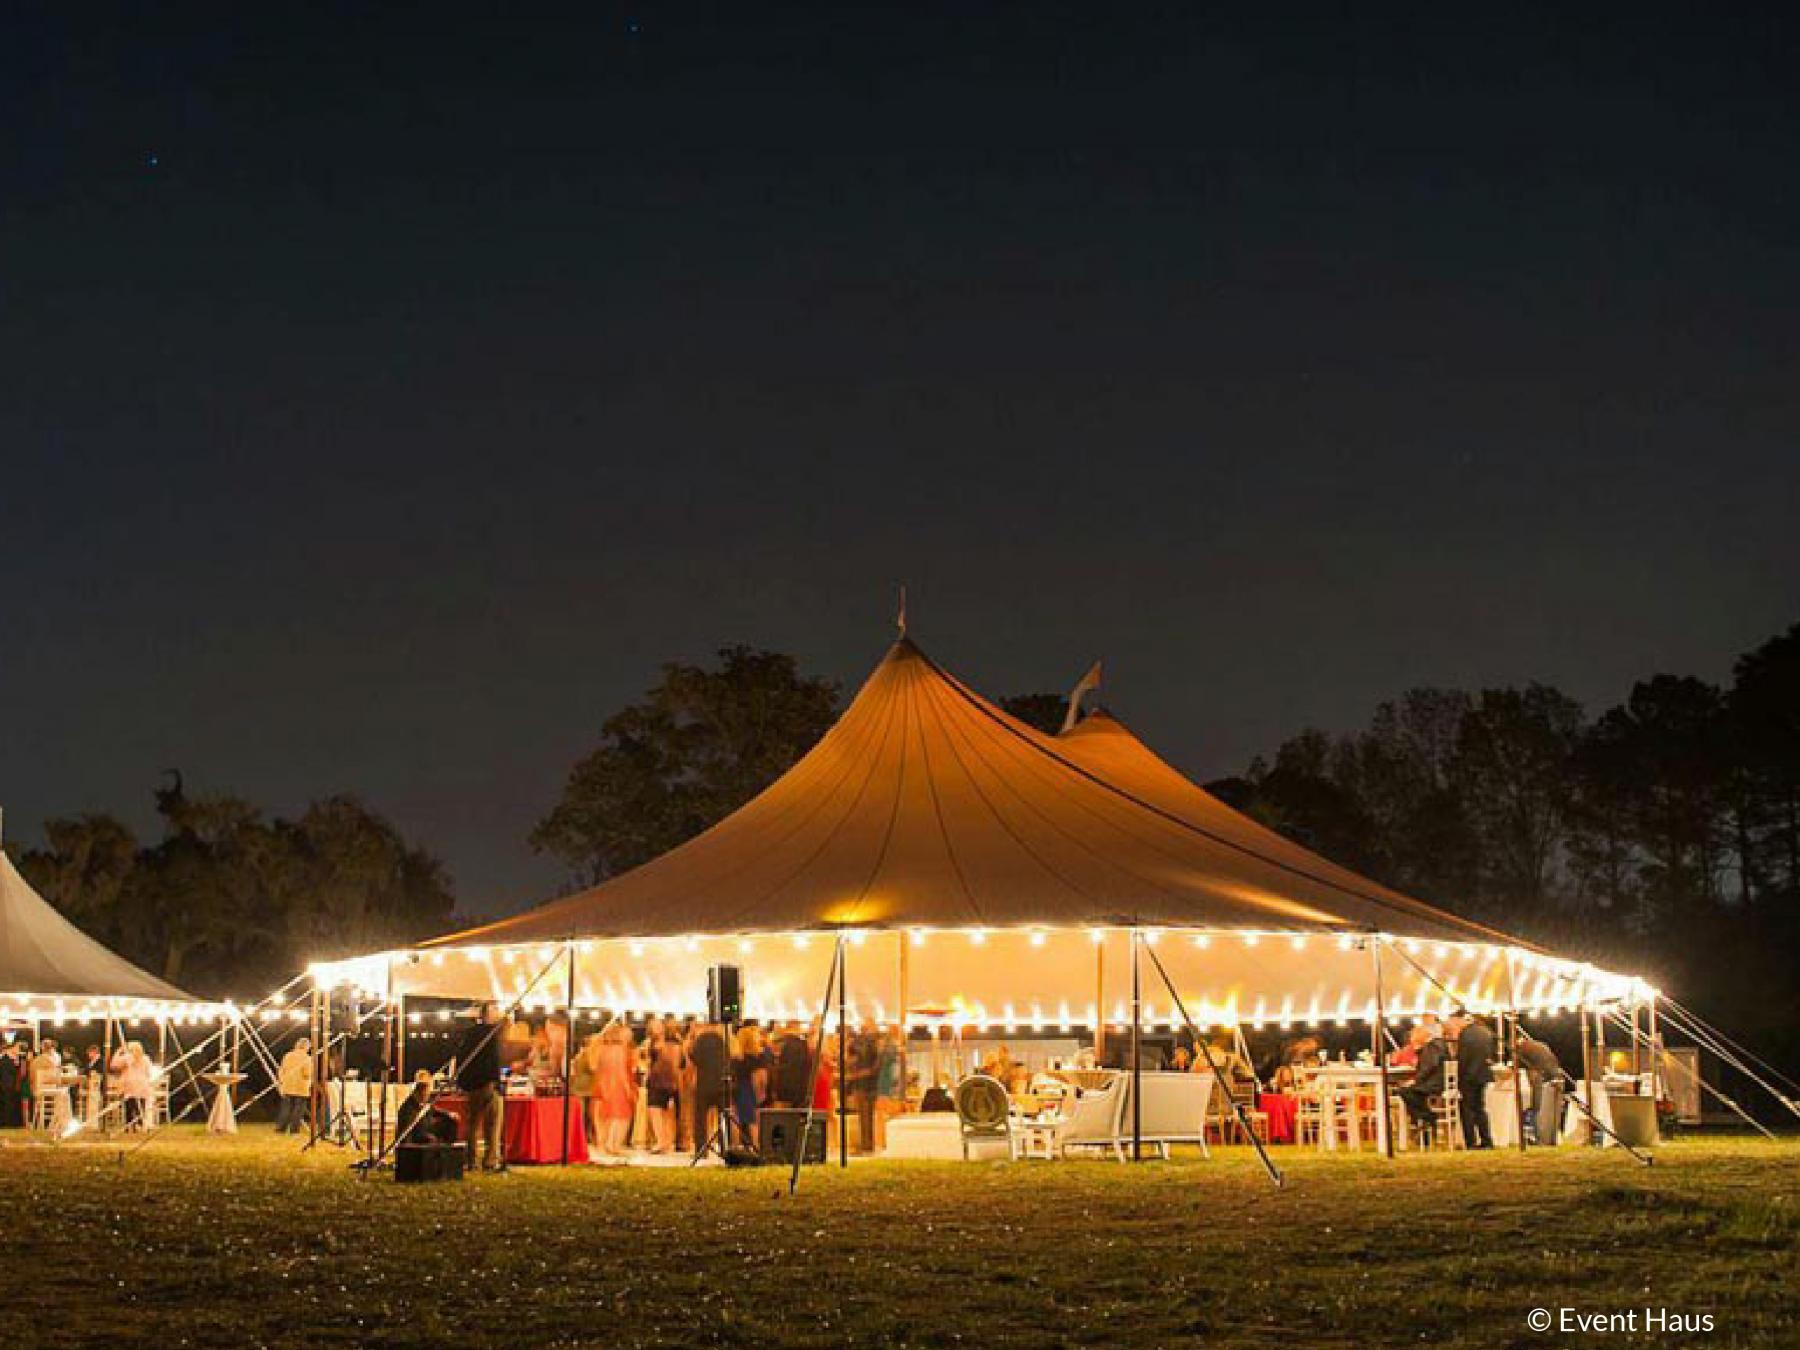 Stillwater tent at night setup with lights